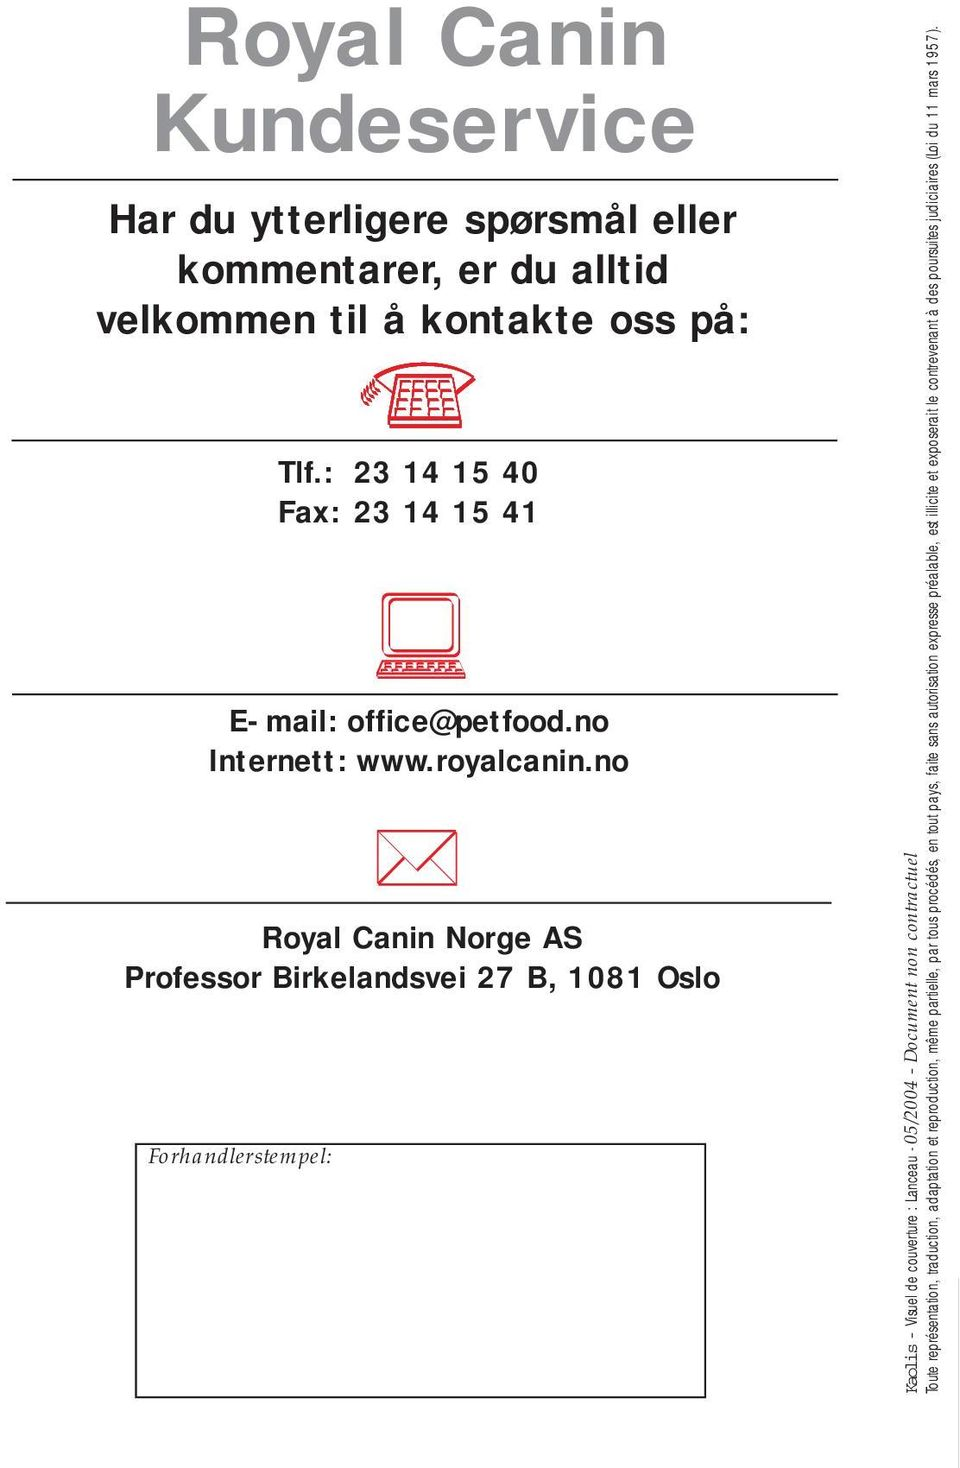 no Royal Canin Norge AS Professor Birkelandsvei 27 B, 1081 Oslo Forhandlerstempel: Kaolis - Visuel de couverture : Lanceau - 05/2004 - Document non